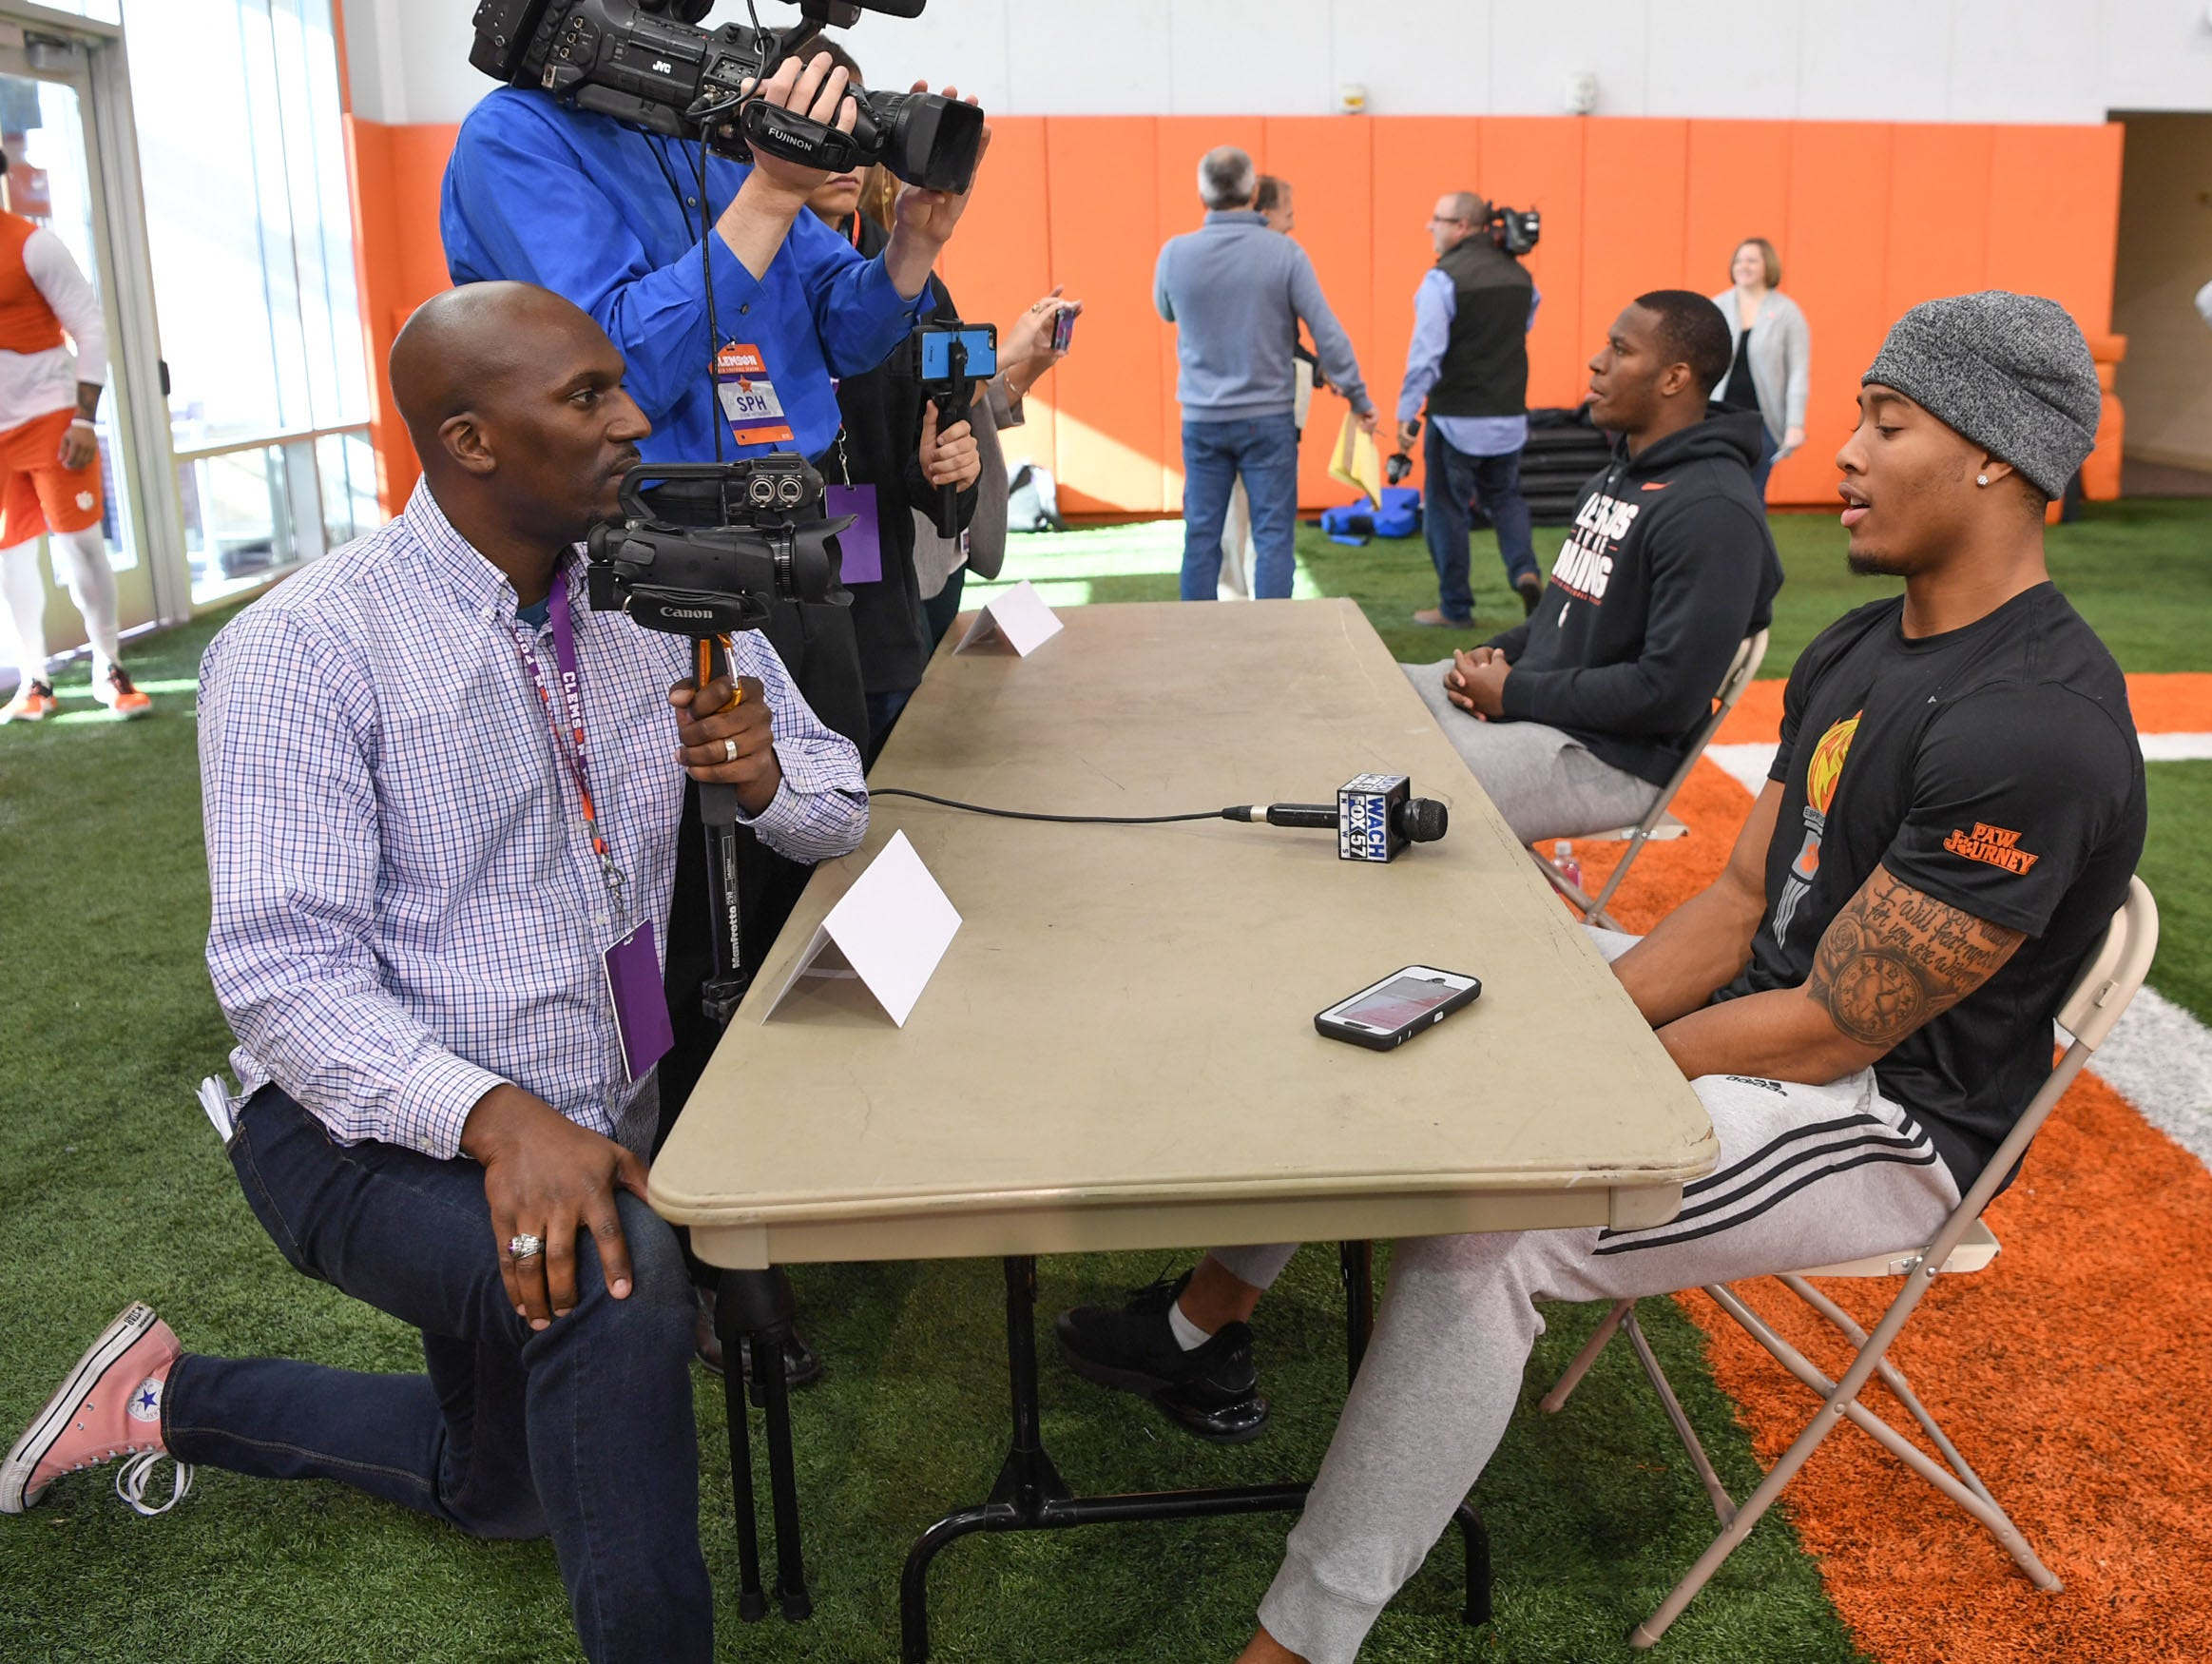 Manie Robinson, left, Greenville News reporter, interviews Clemson safety Isaiah Simmons, right, during Media Day at the Poe Indoor Facility in Clemson on Tuesday.